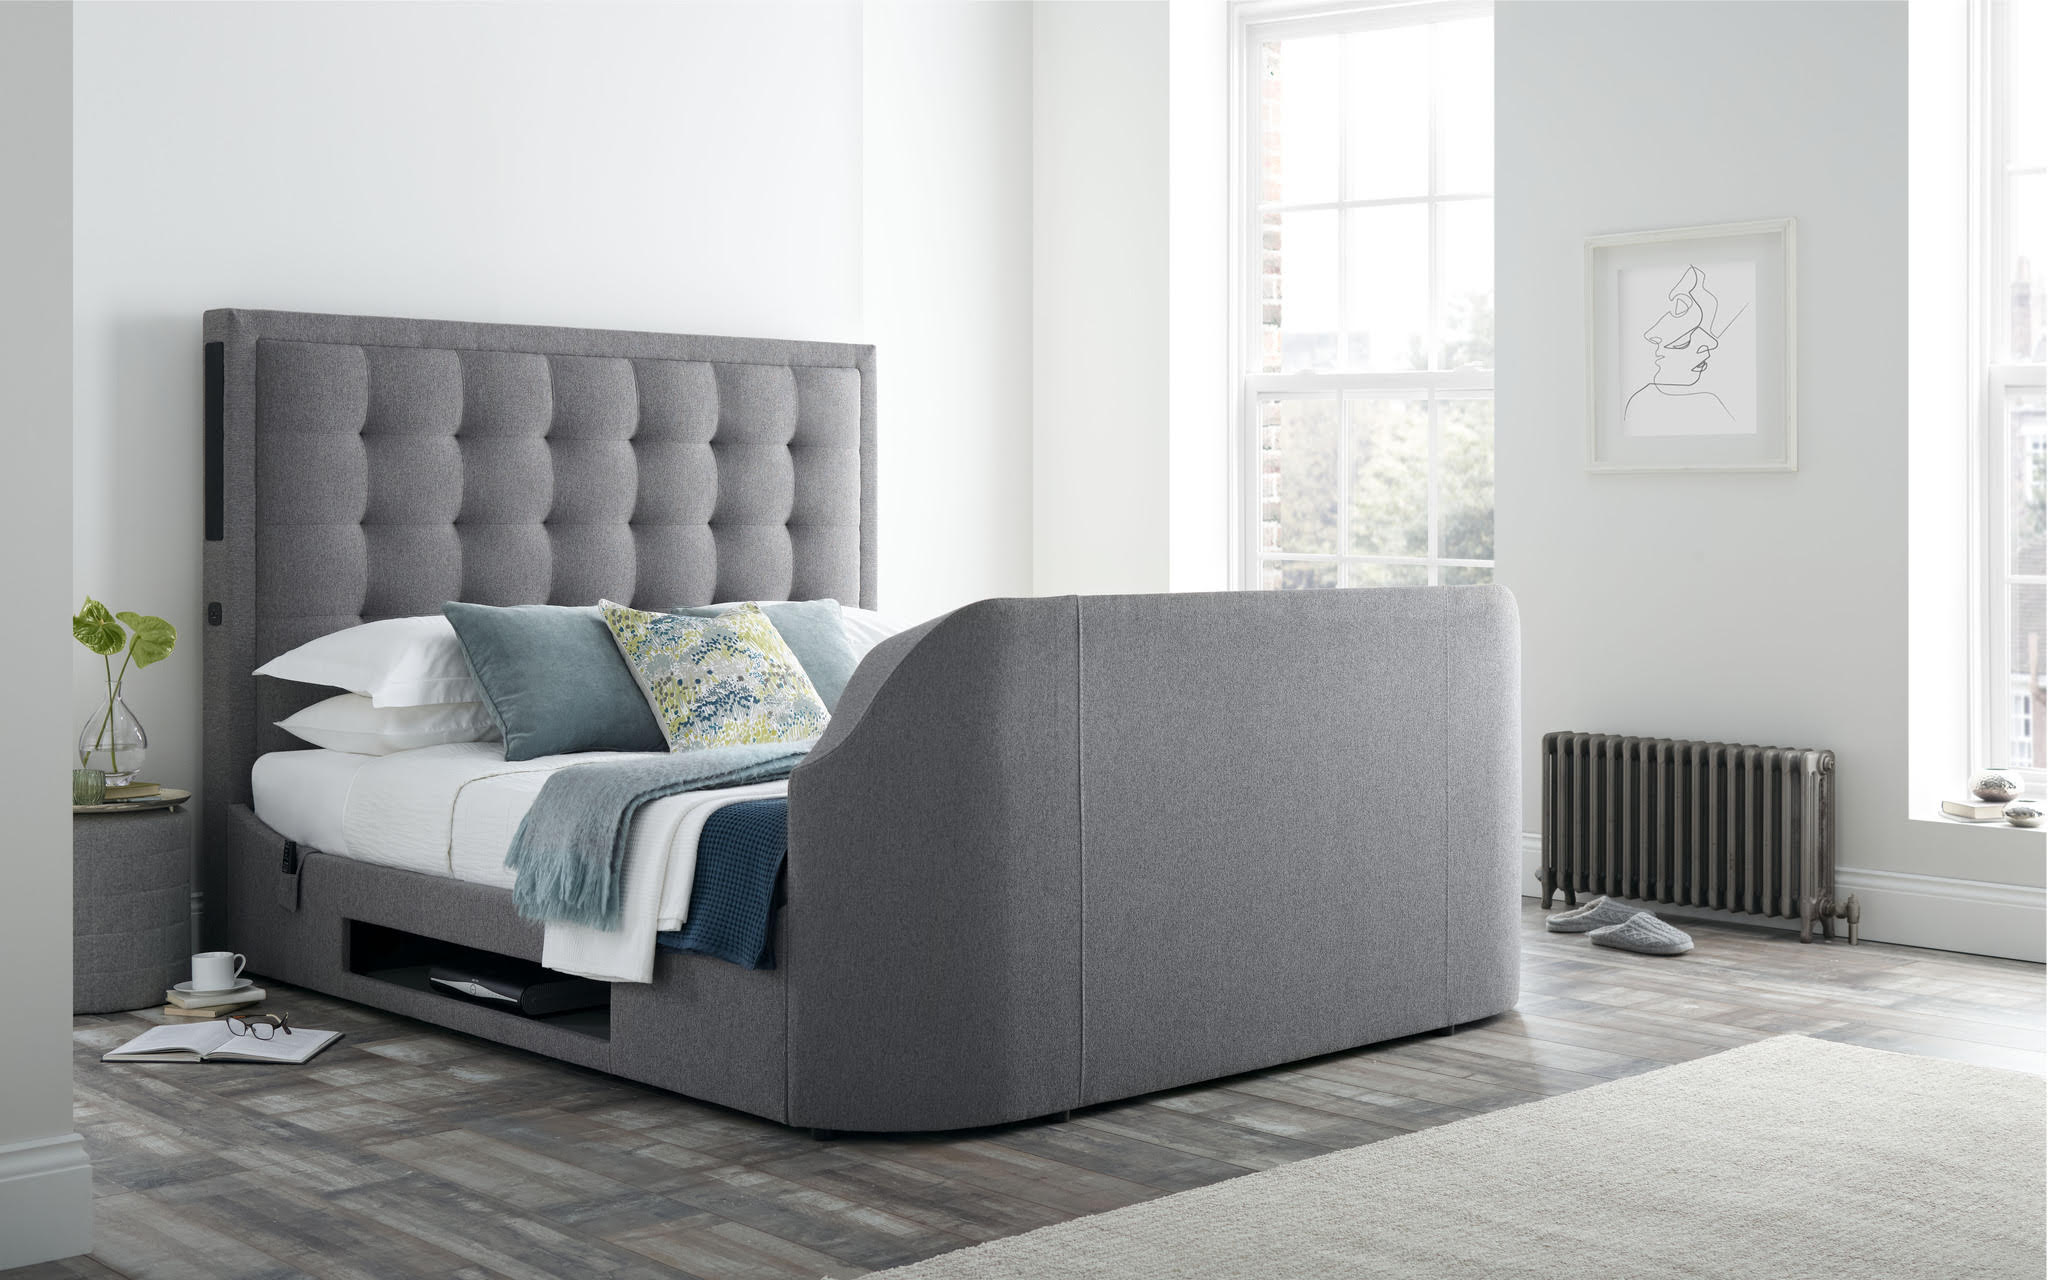 The Titan 2 King Size Tv Bed Frame 0 Finance Available Tv Bed Store